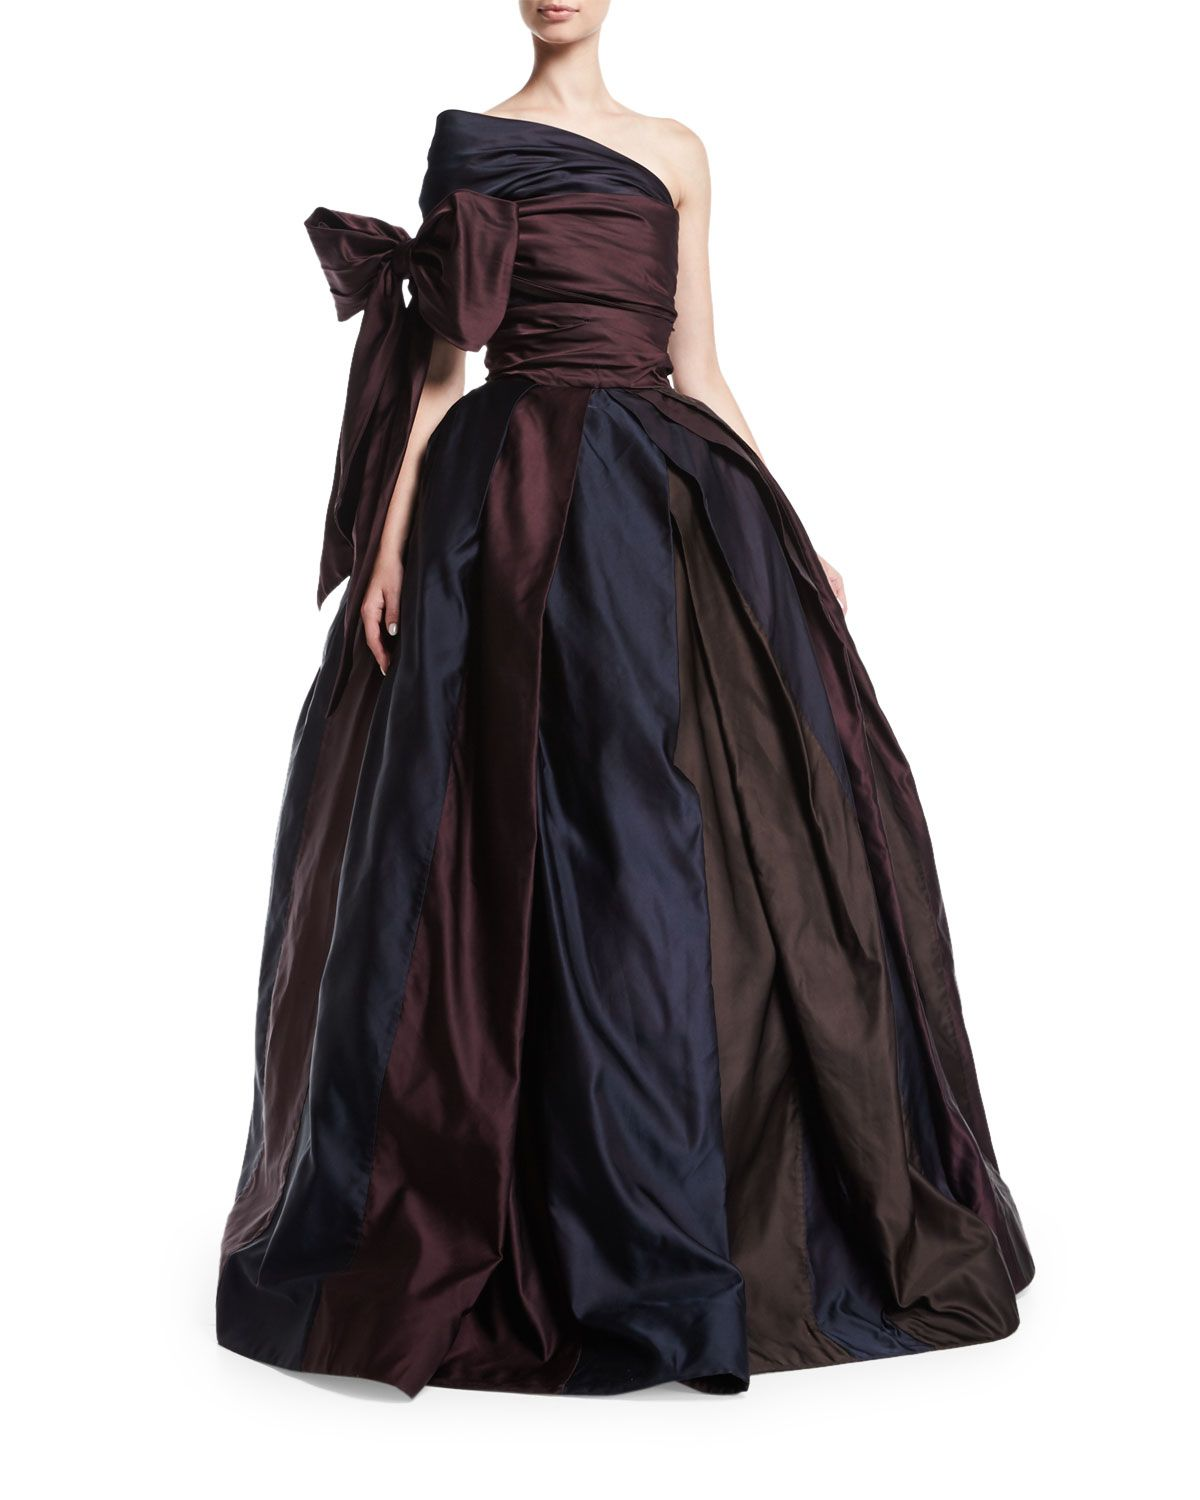 One-Shoulder Ball Gown with Bow, Brown/Purple/Navy   Products